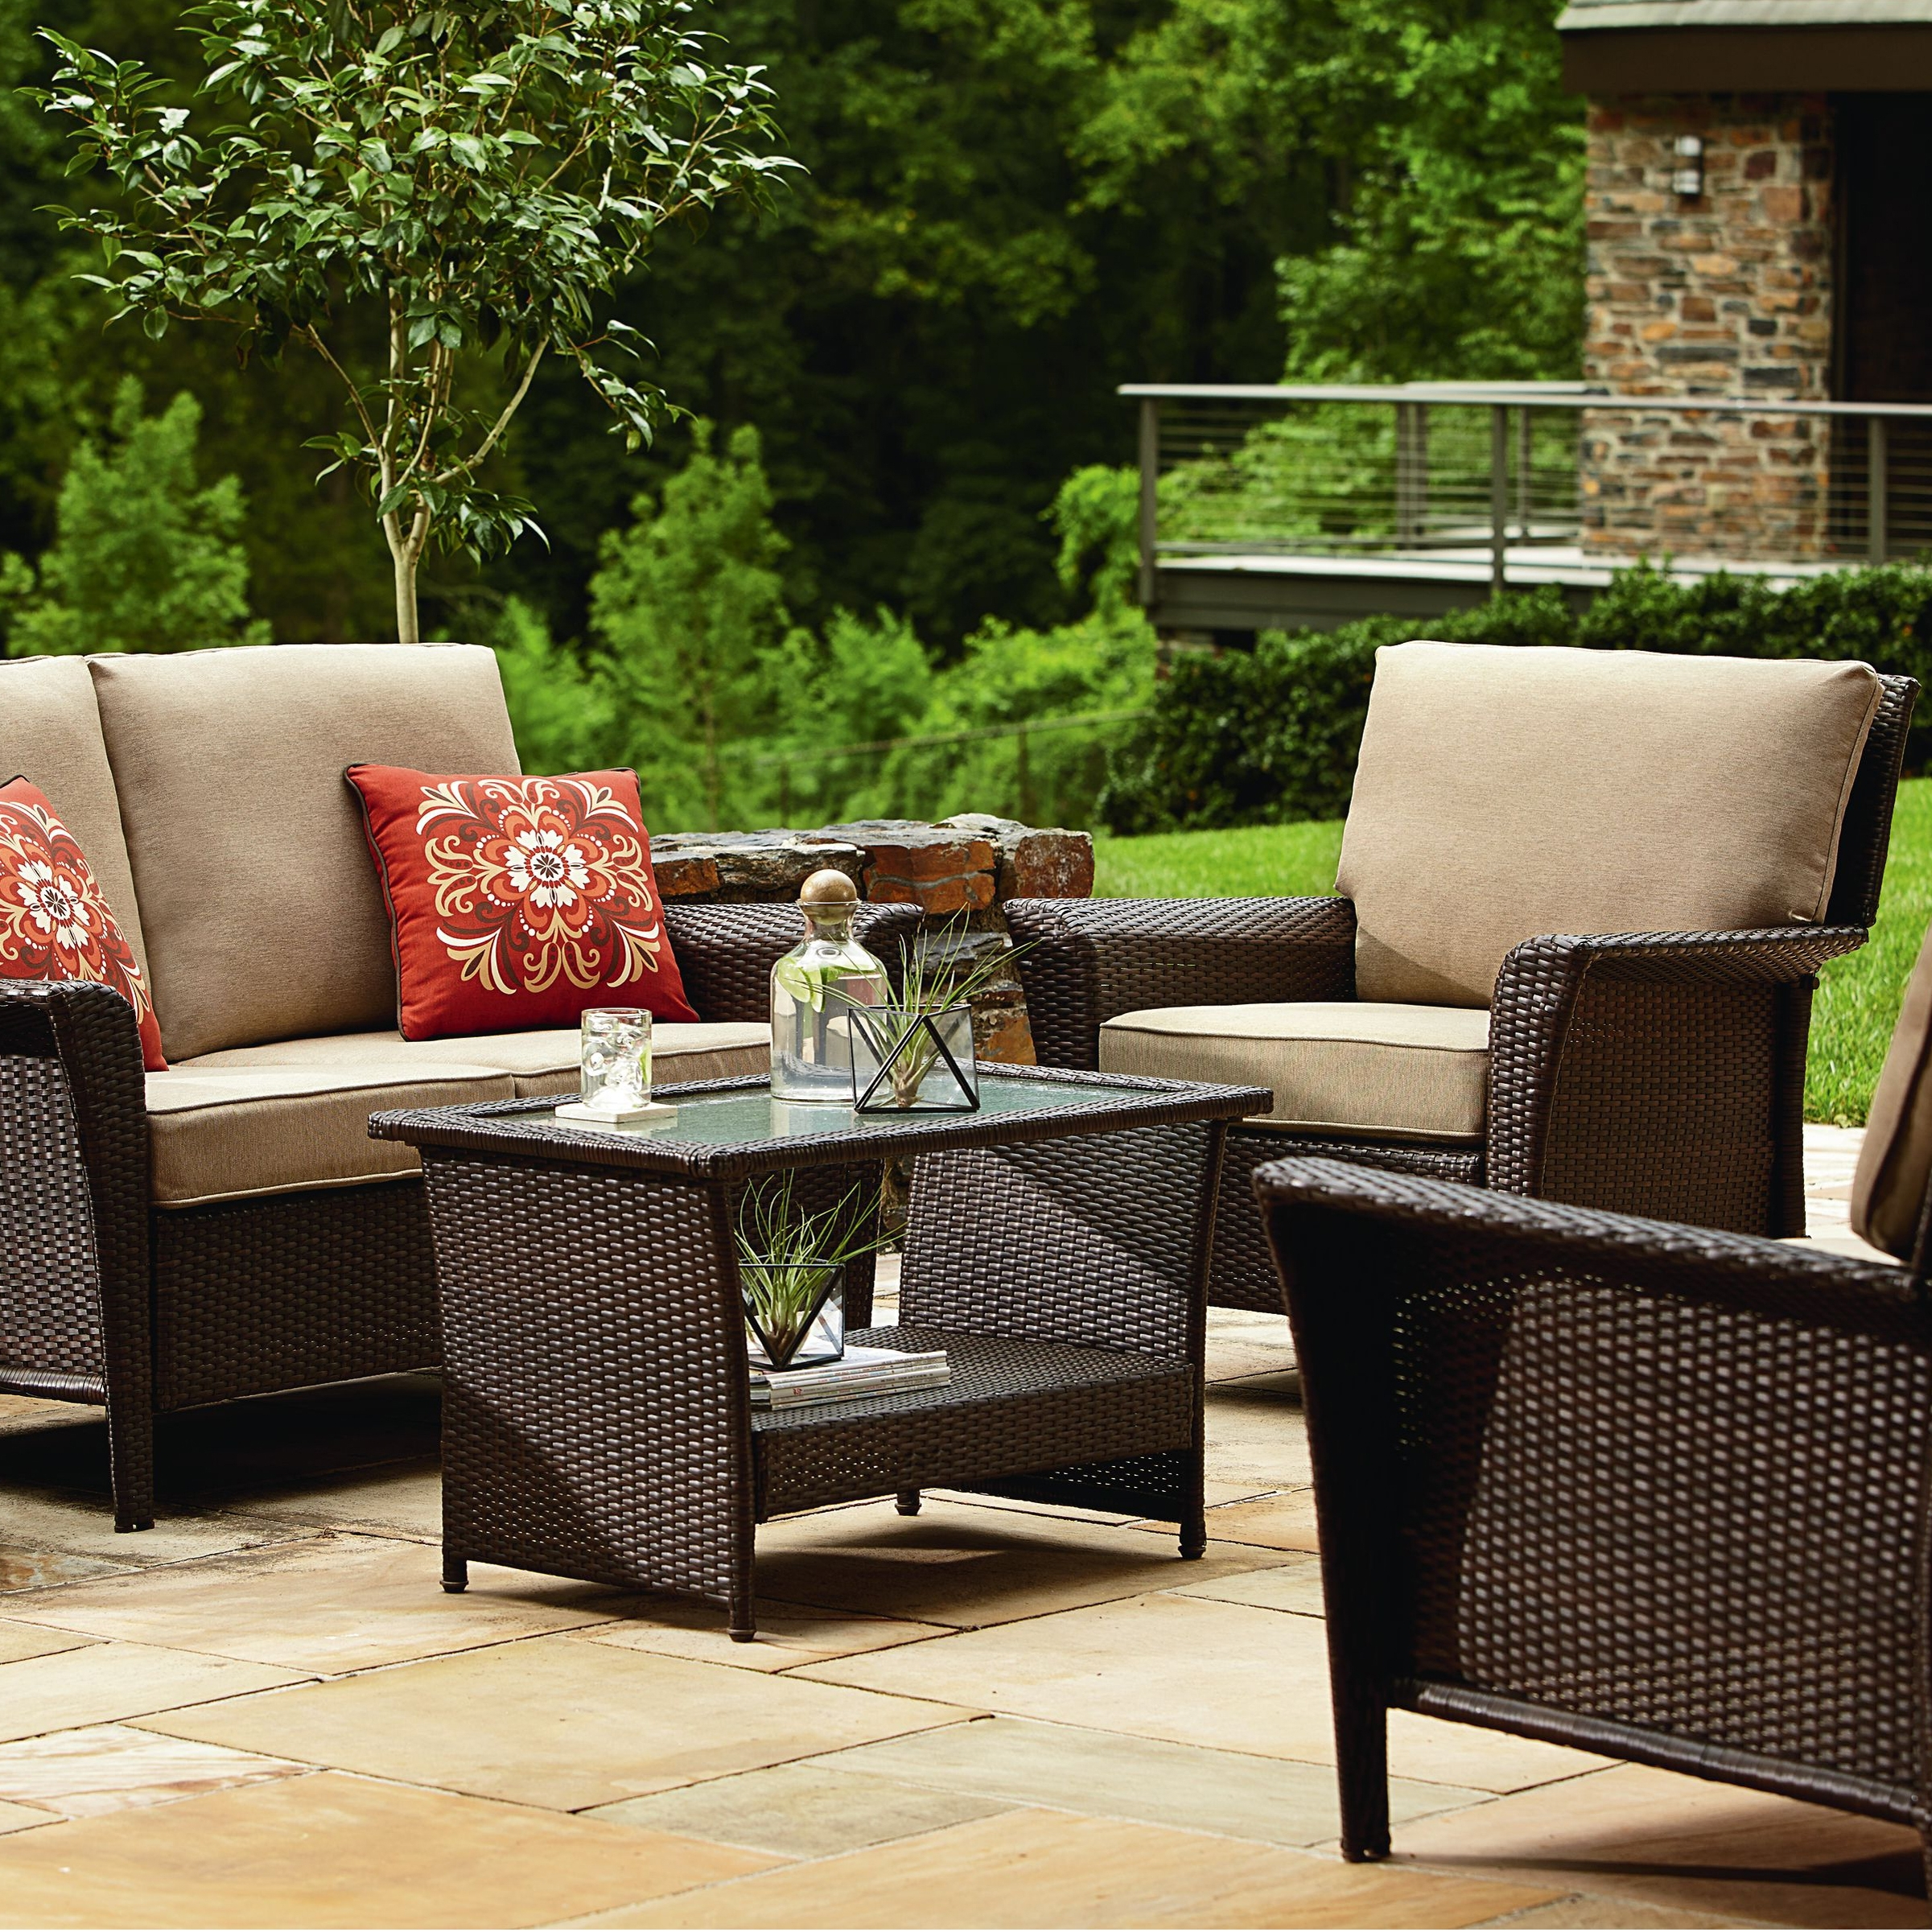 Patio Conversation Sets For Small Spaces With Recent Awesome Sears Patio Table View With Family Room Small Room Sears (View 13 of 20)